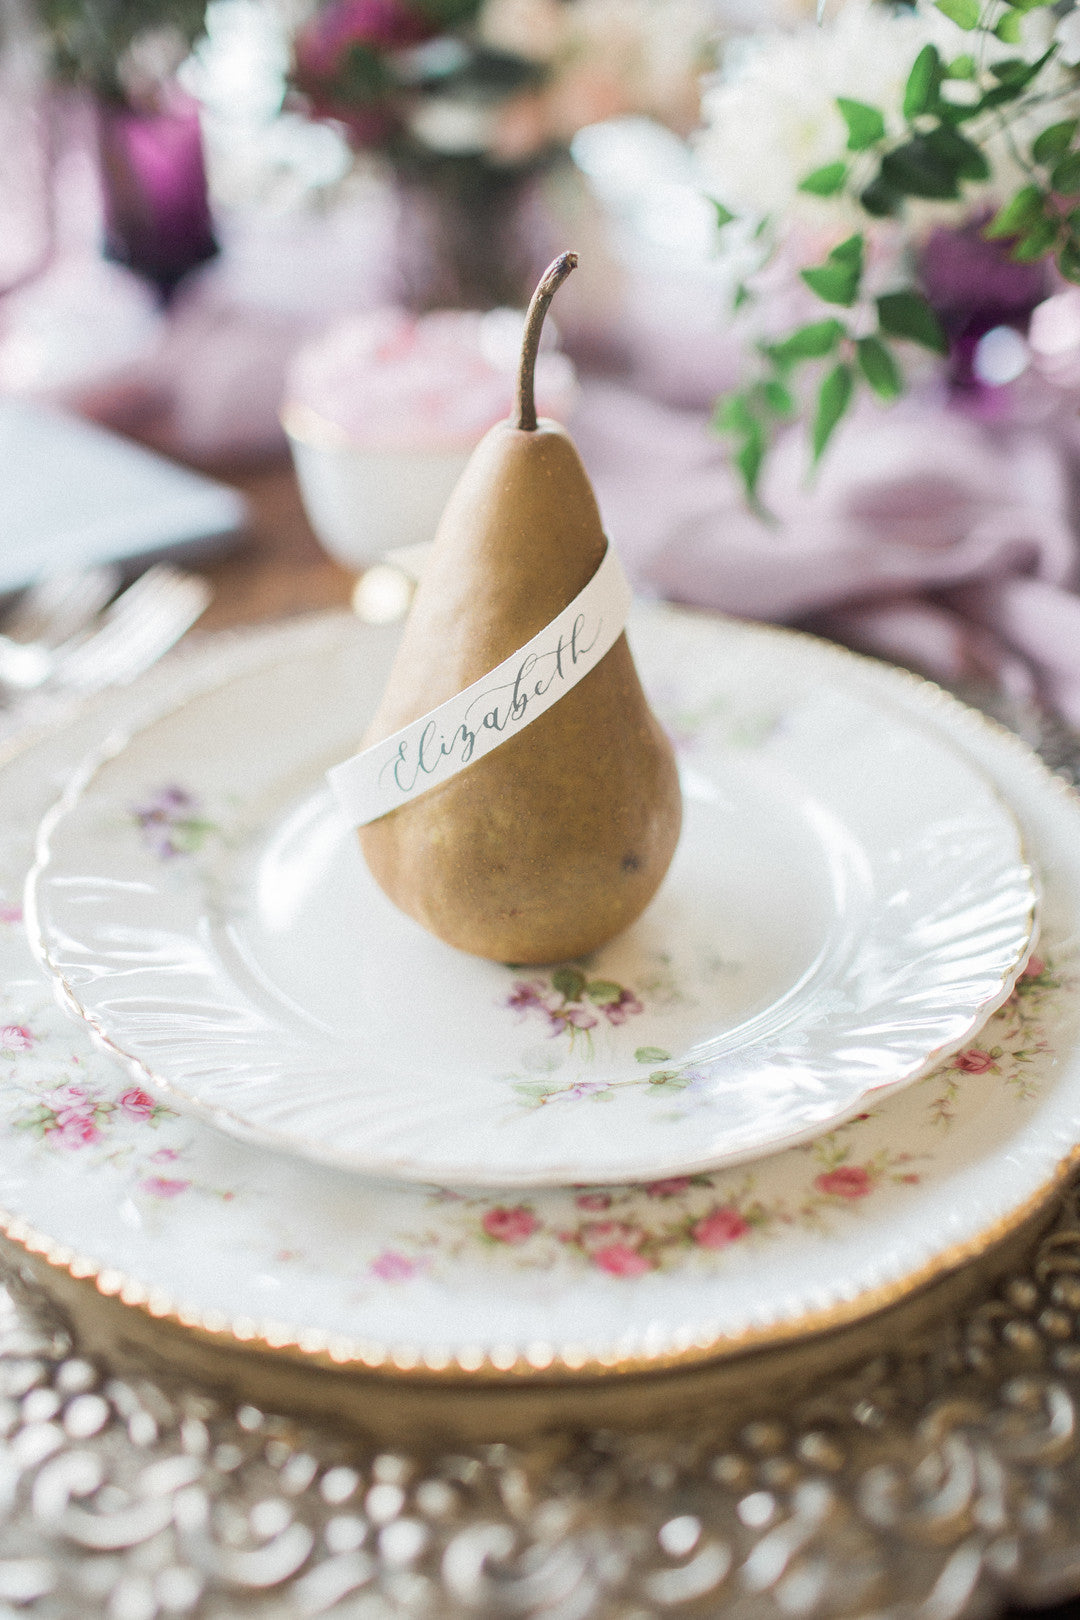 Pear Name Cards | Tips For the Perfect Floral Bridal Shower | Kate Aspen